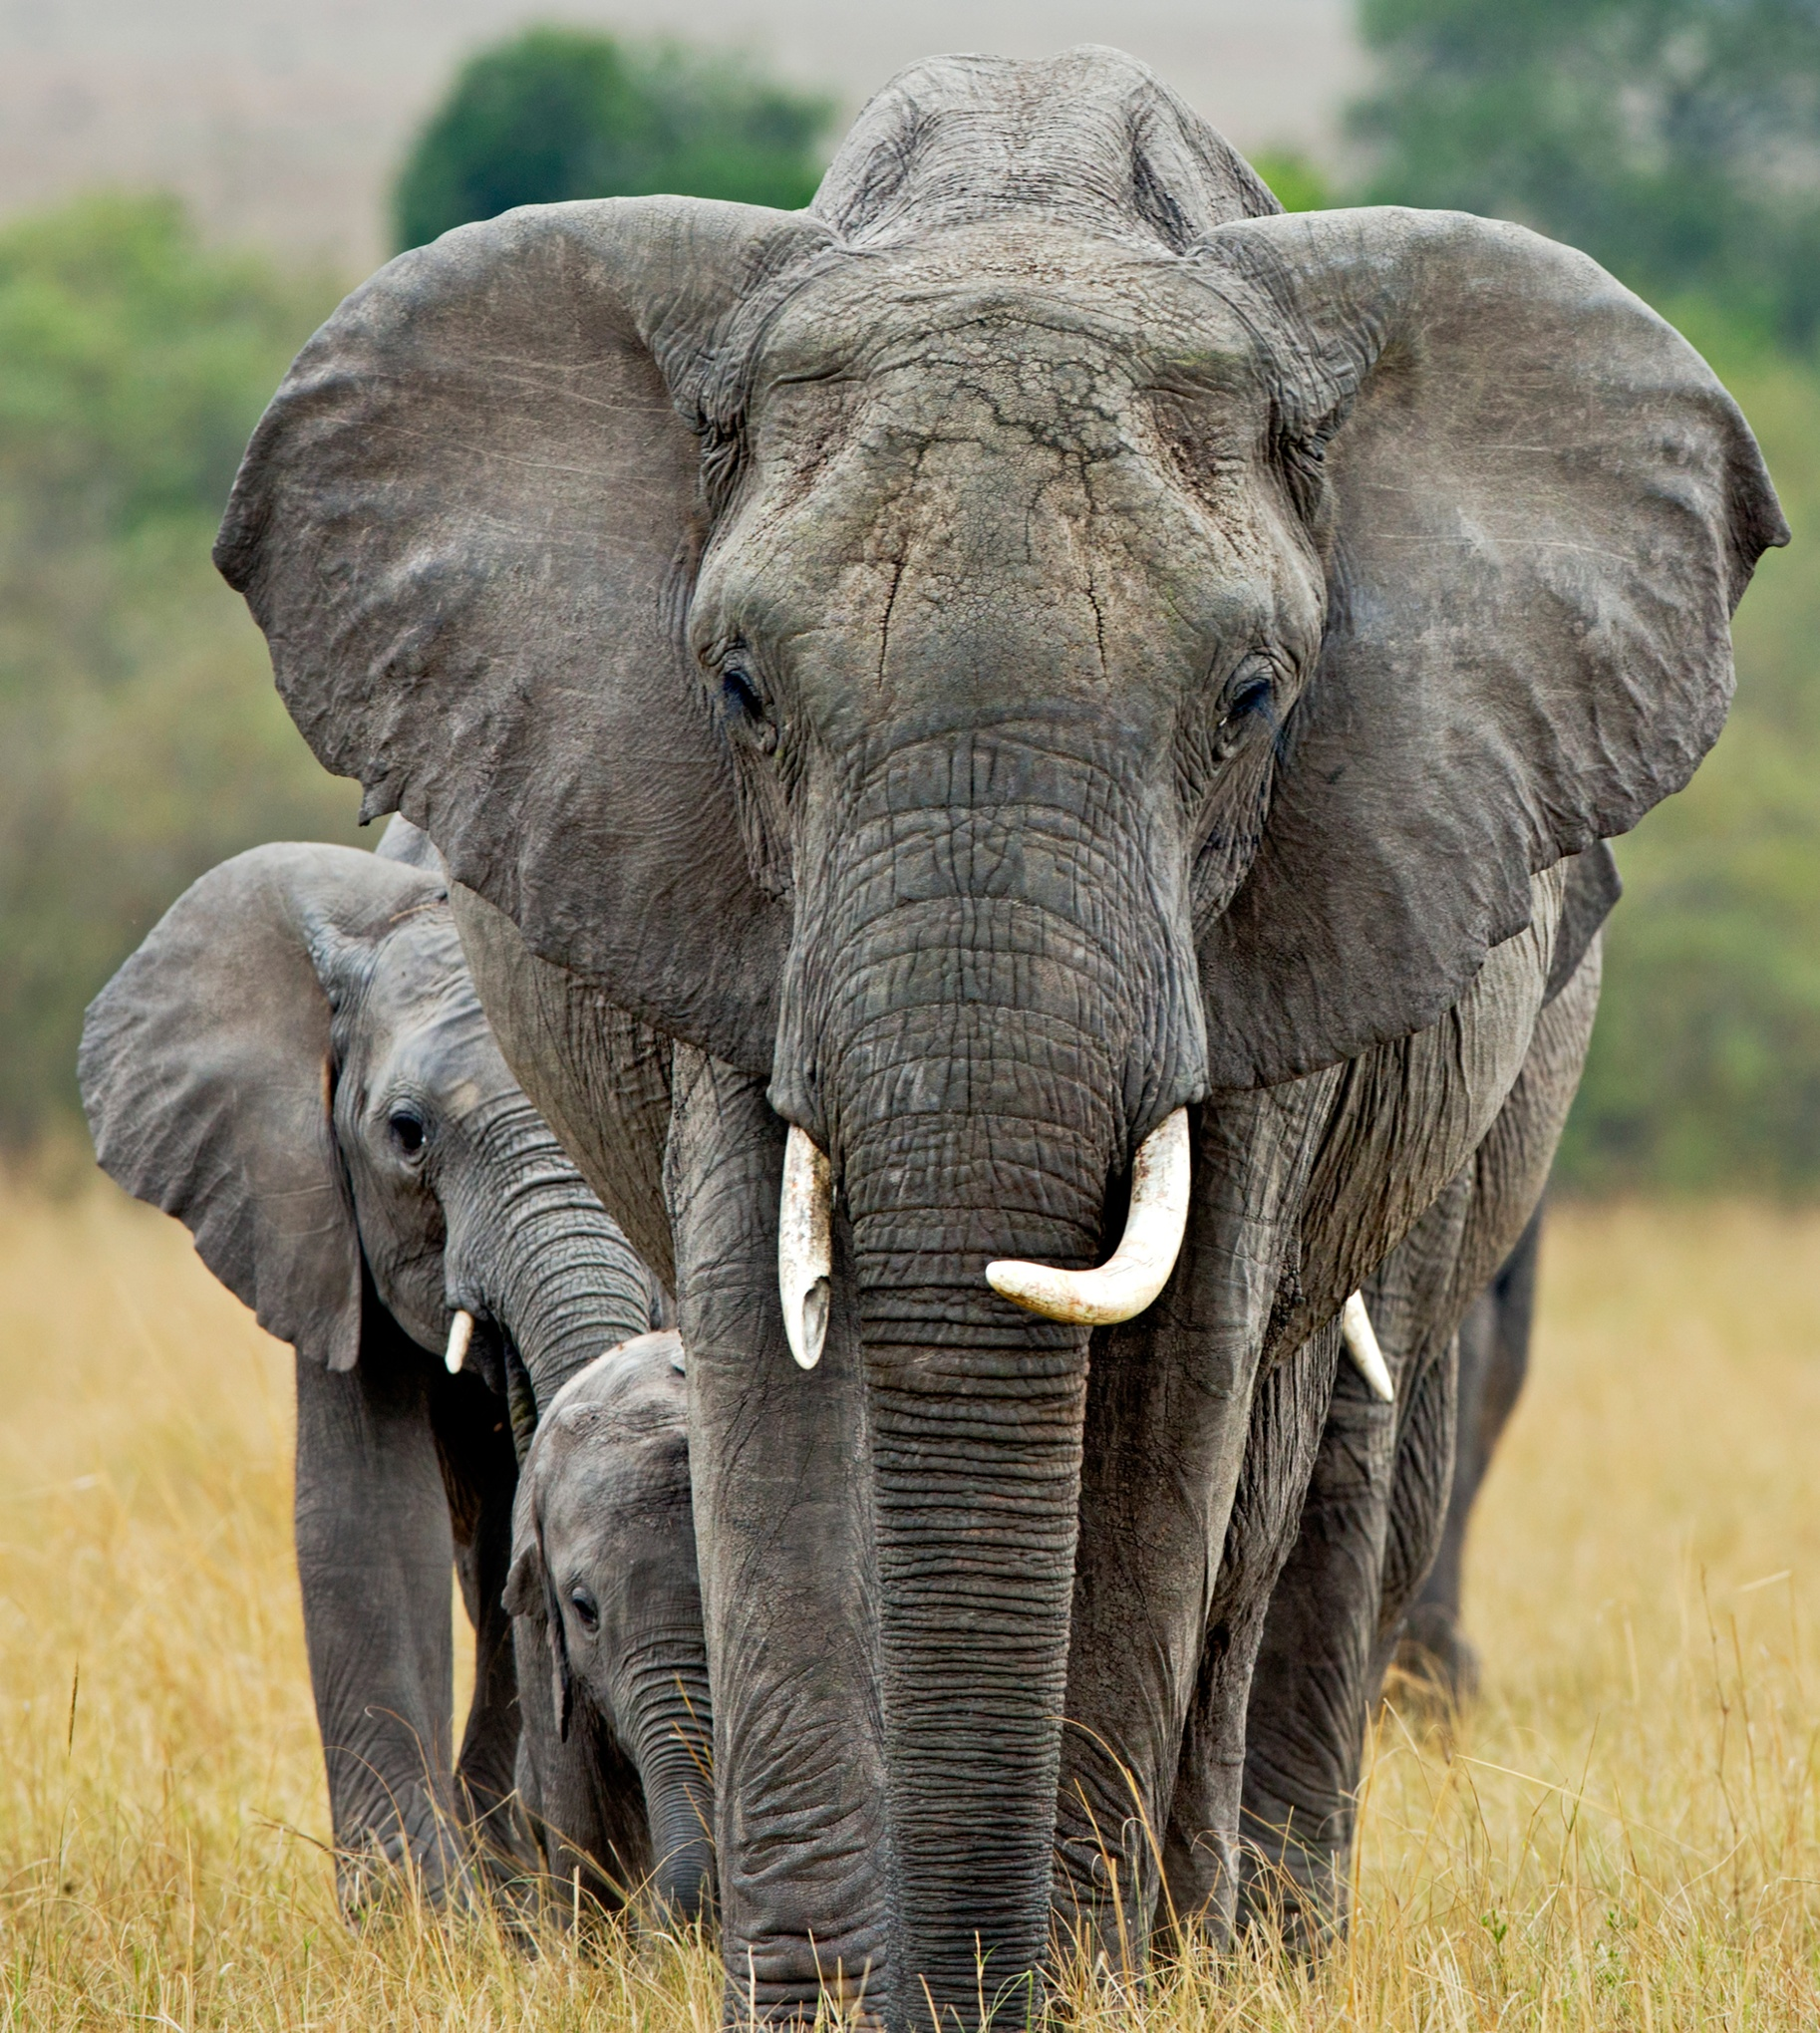 animals endangered facing extinction species elephant elephants african climate change wwf animal baby most things extinct global warming reversal gender